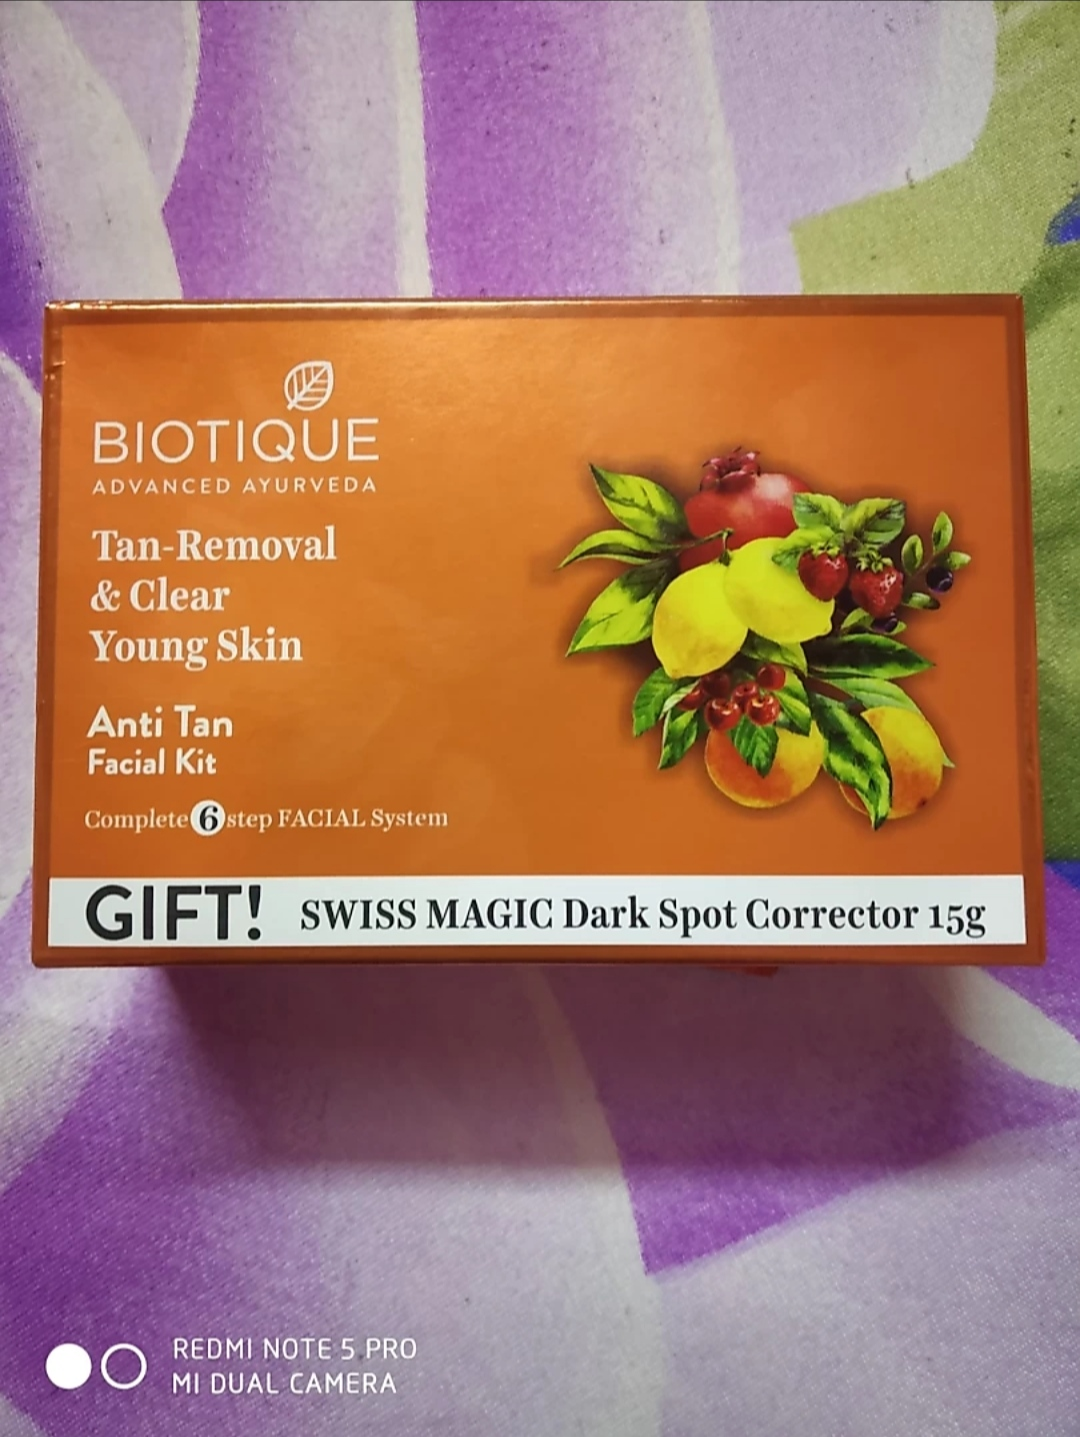 fab-review-Biotique Bio Tan facial Kit-By mitshu98